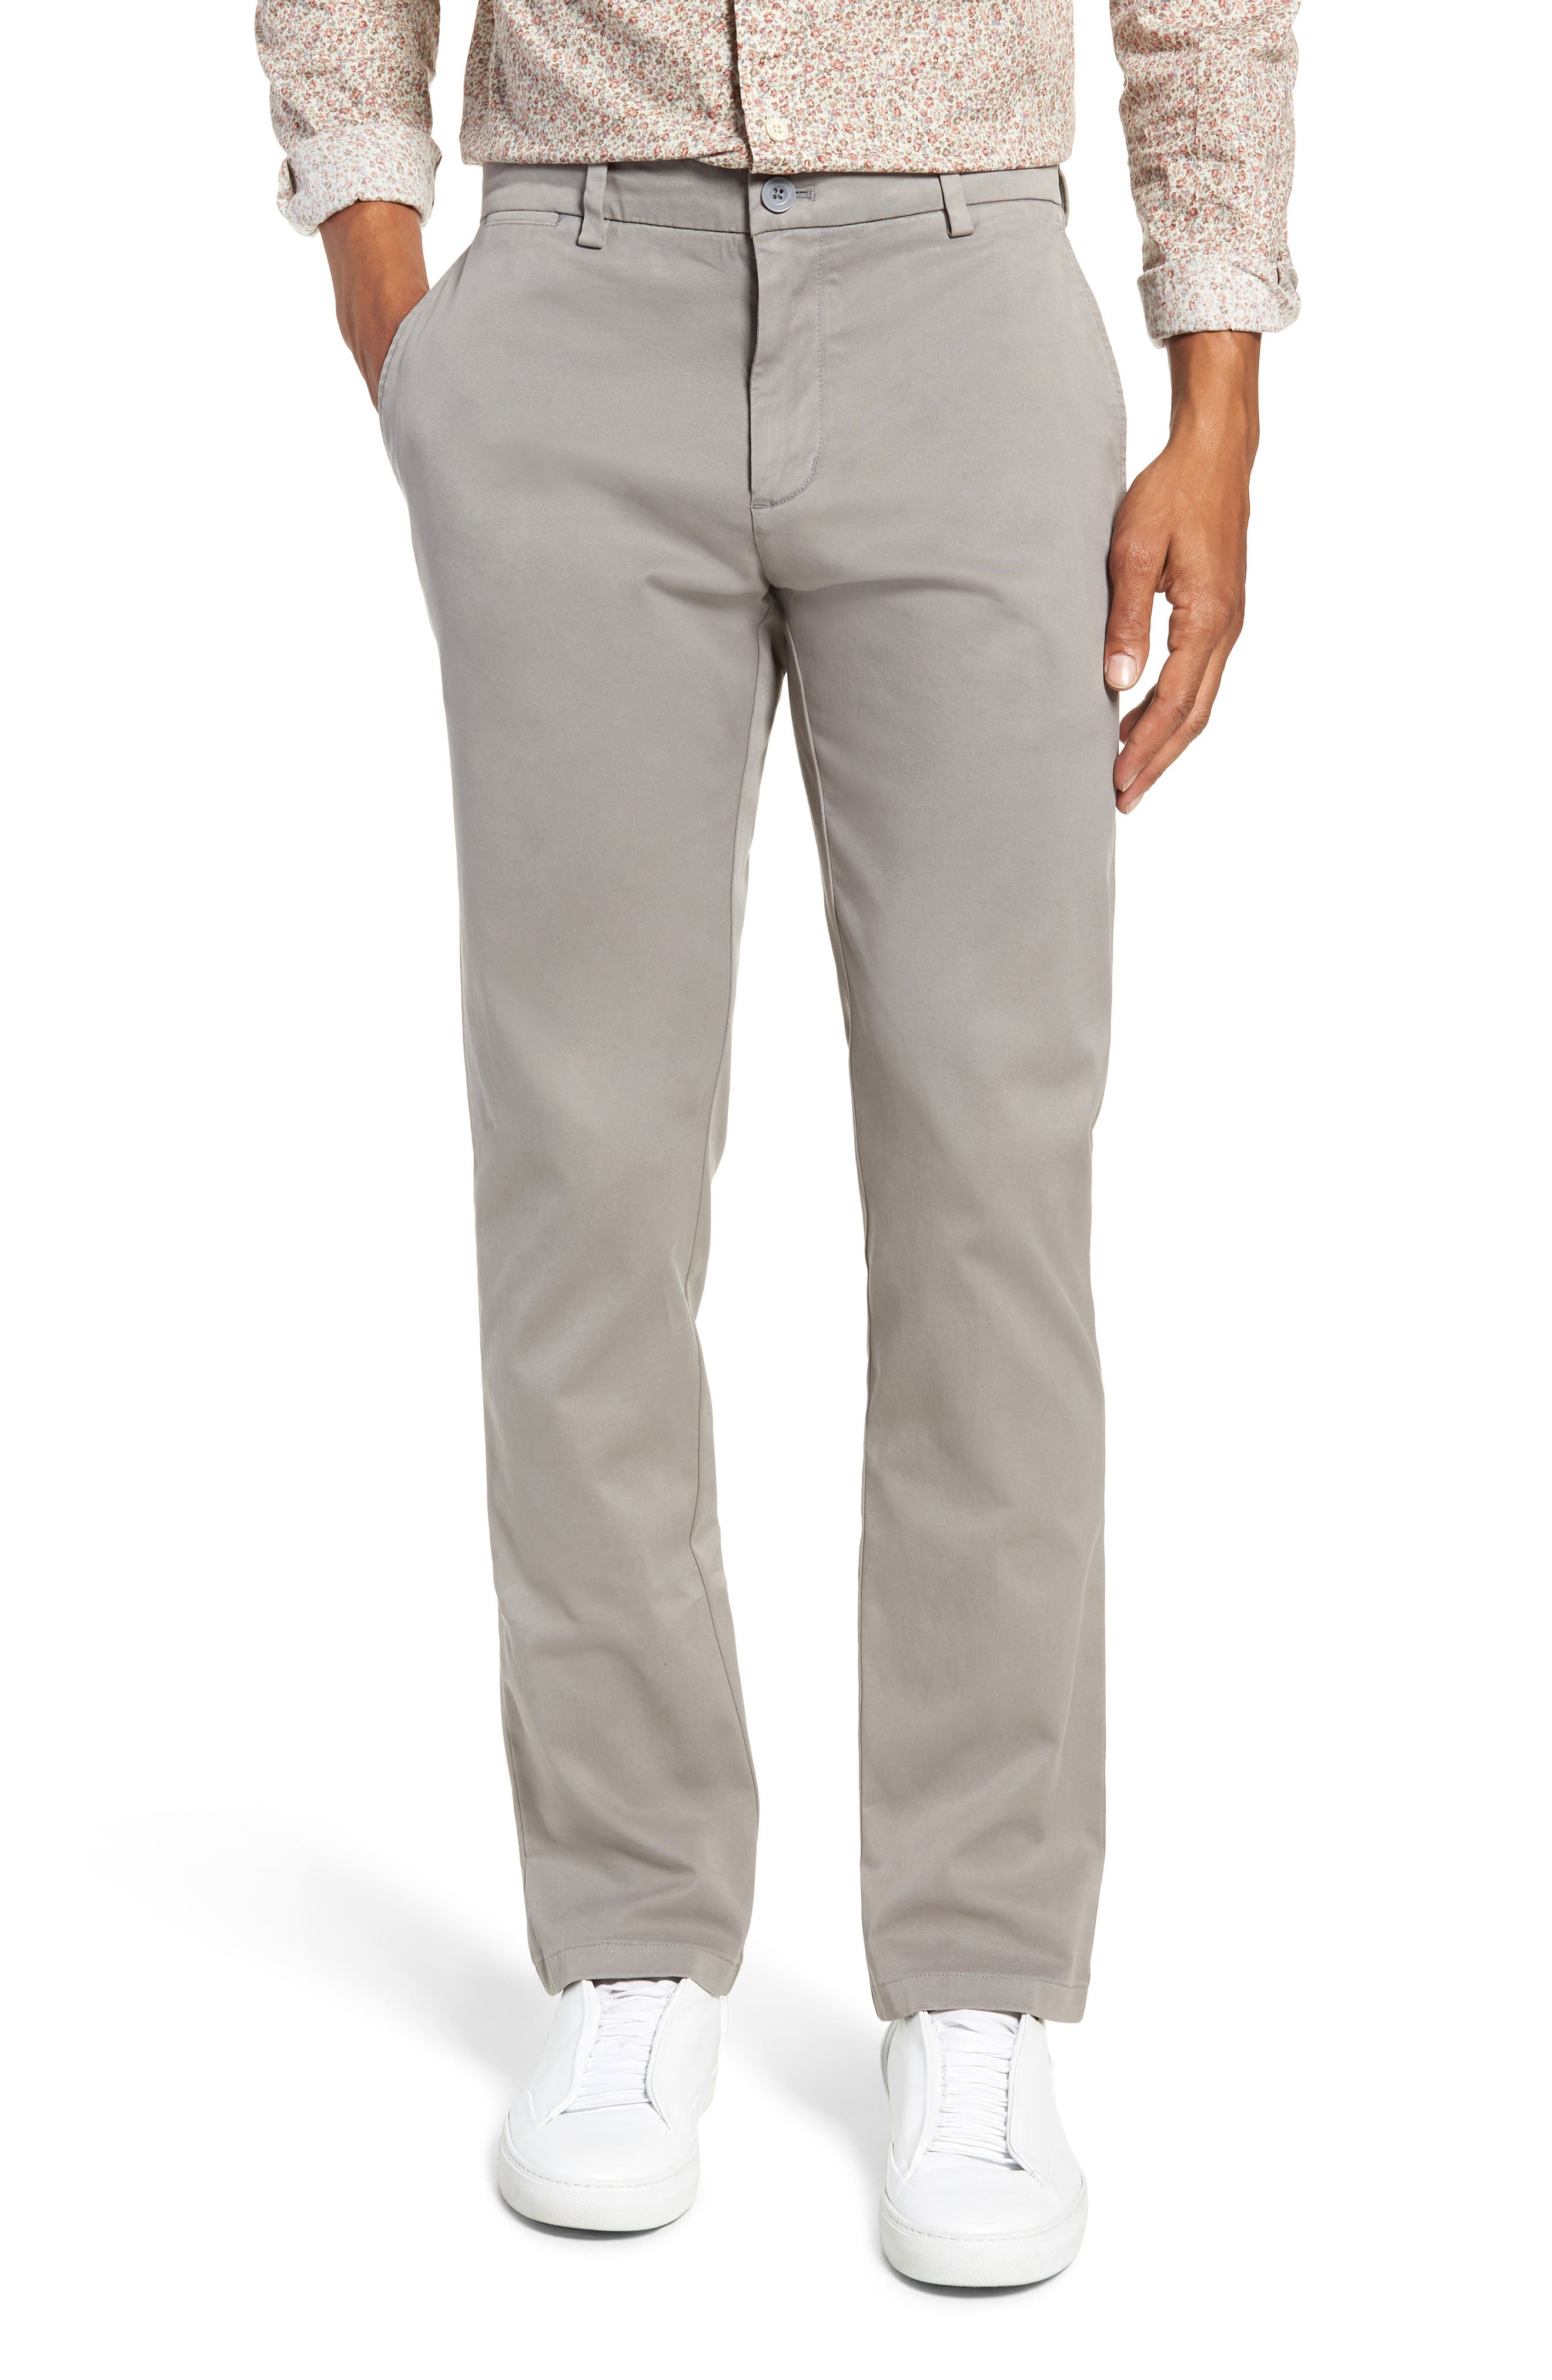 Stretch Slim Fit Pants,                         Main,                         color, ANCHOR GREY